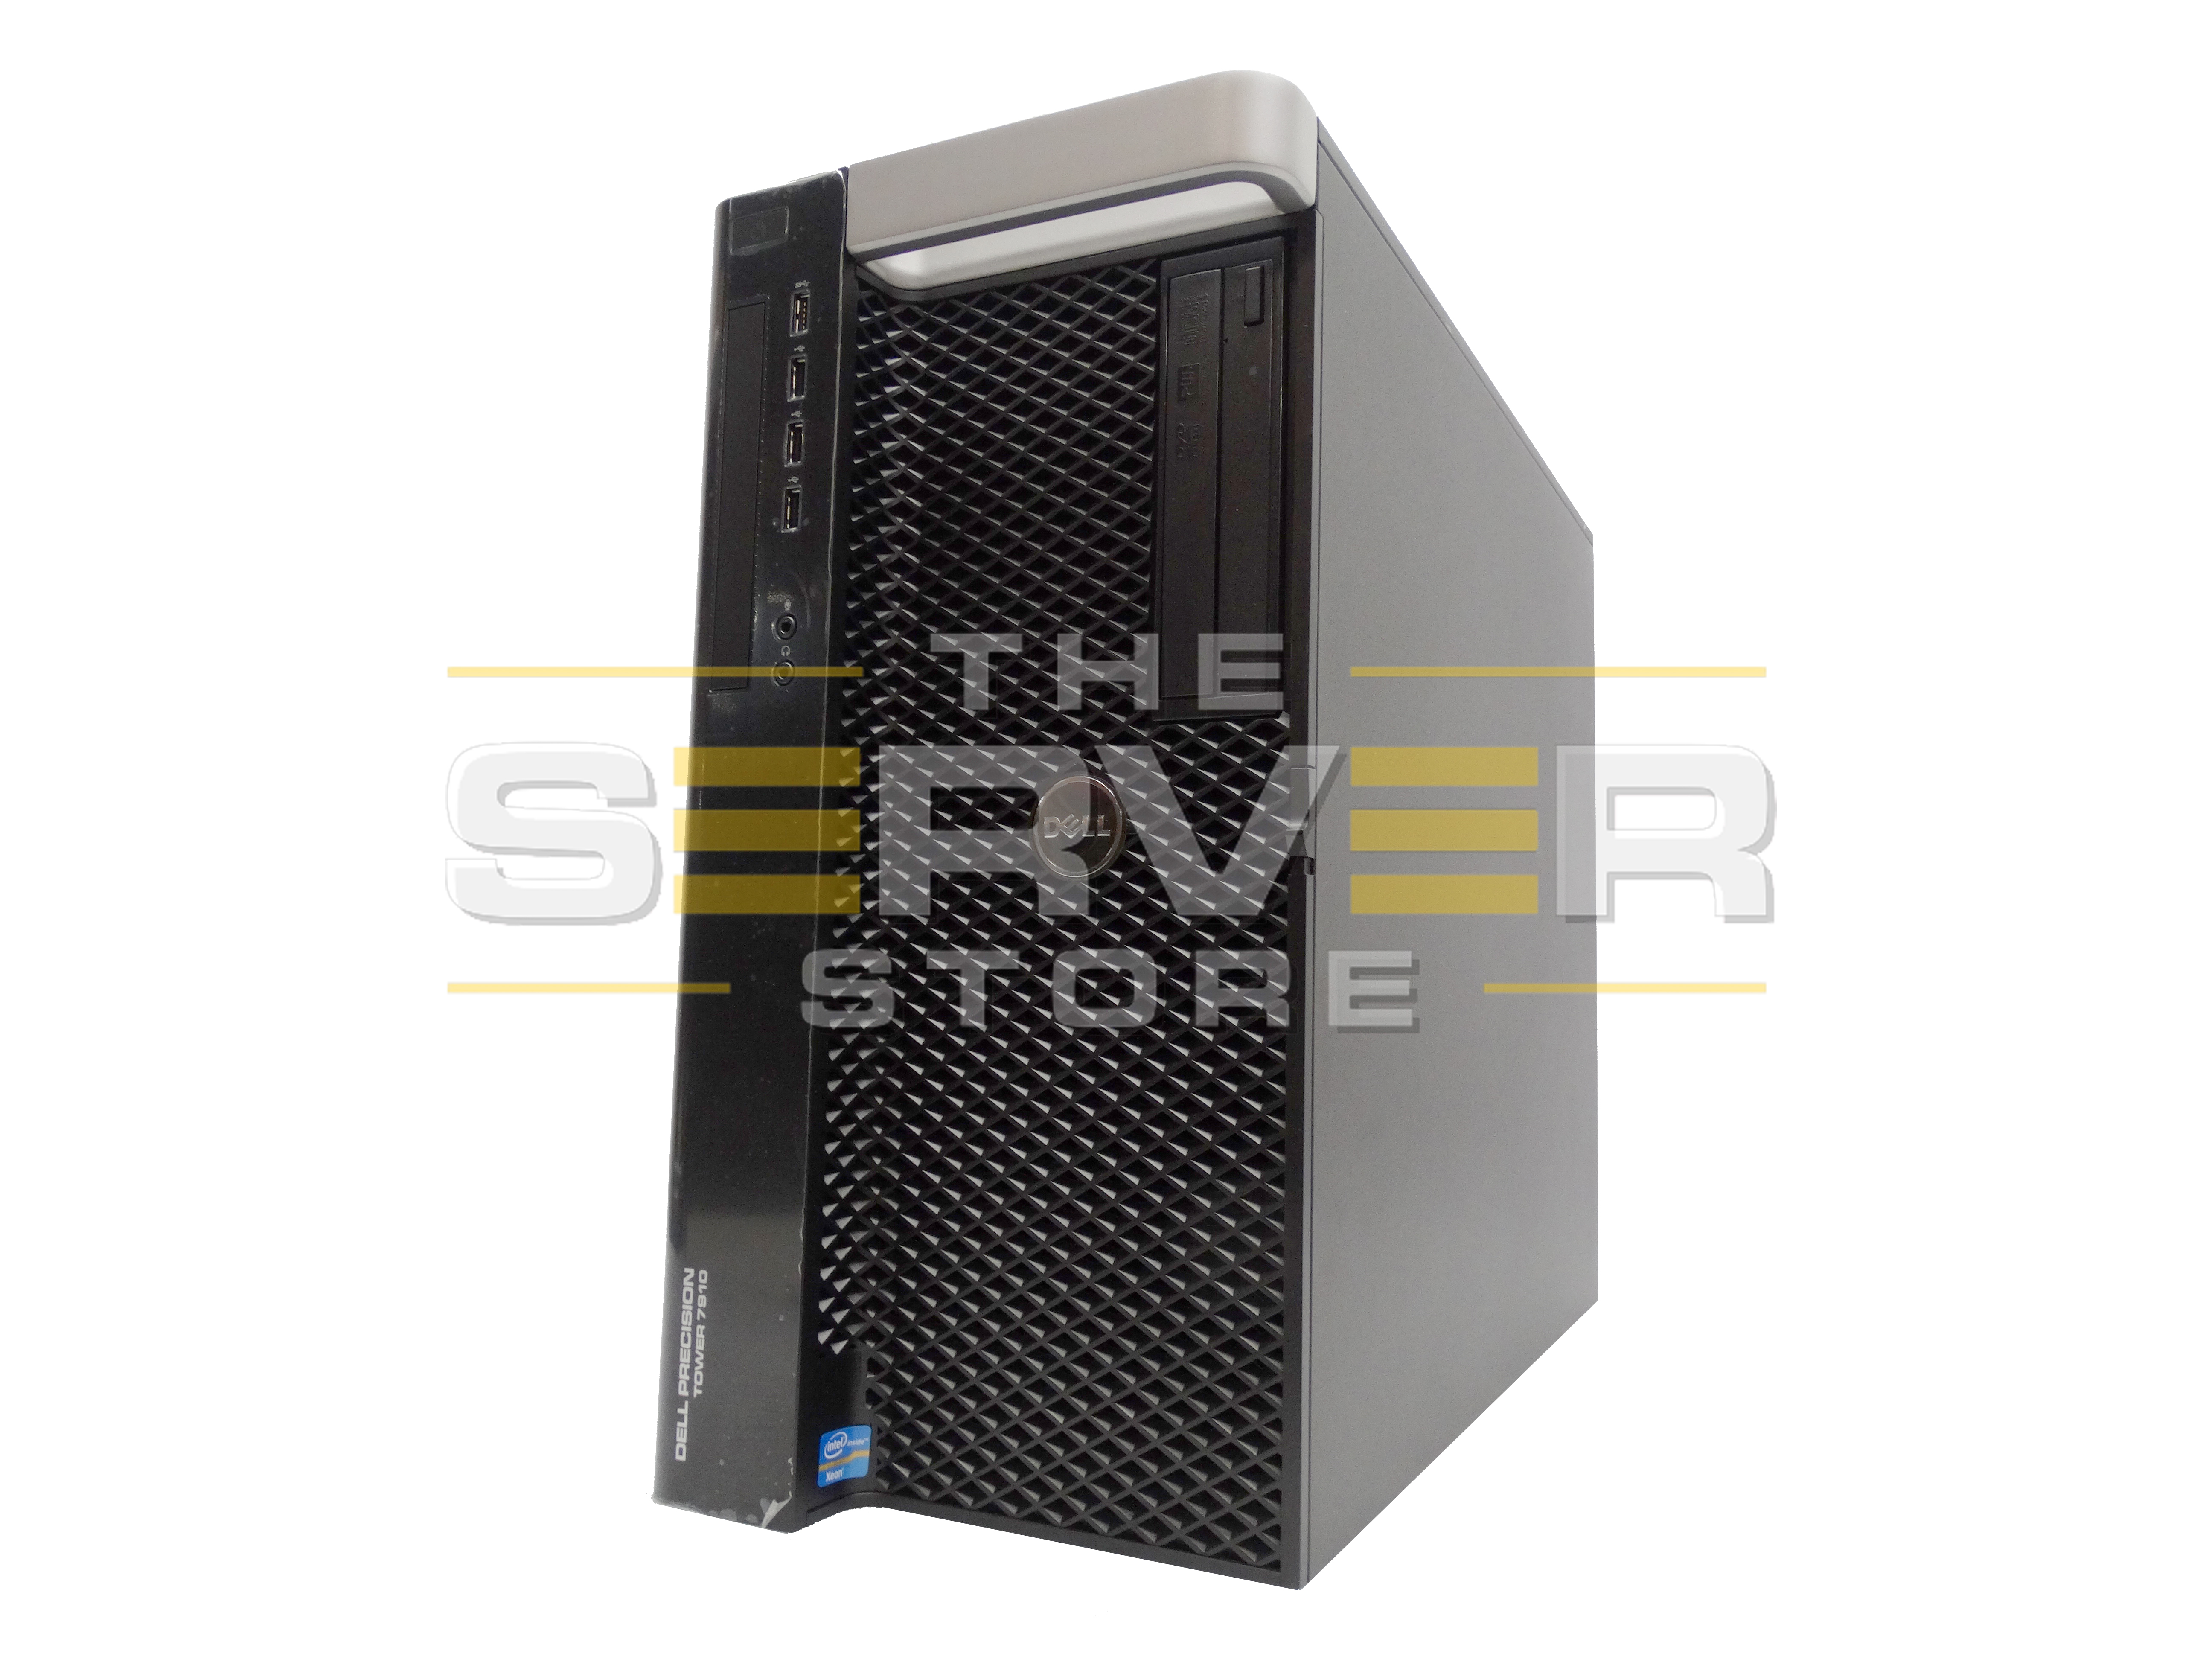 Dell Precision Tower 7910 (T7910) Workstation